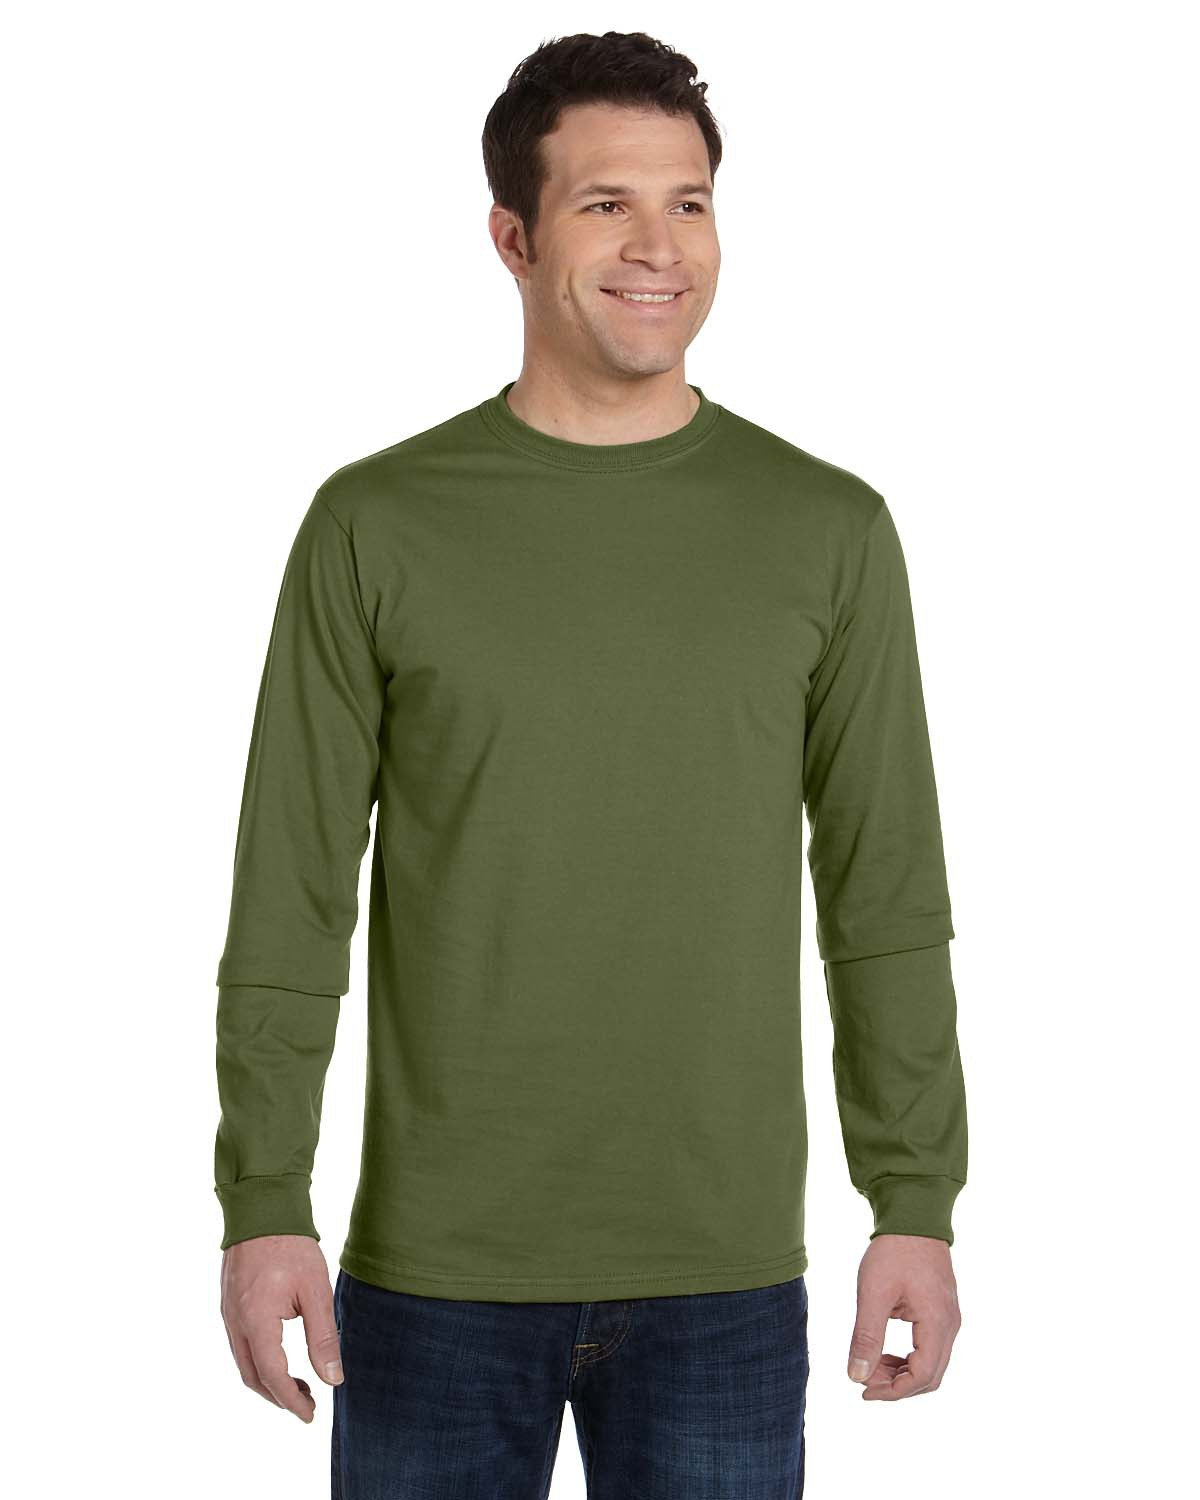 Econscious EC1500 - 5.5 oz., 100% Organic Cotton Classic Long-Sleeve T-Shirt